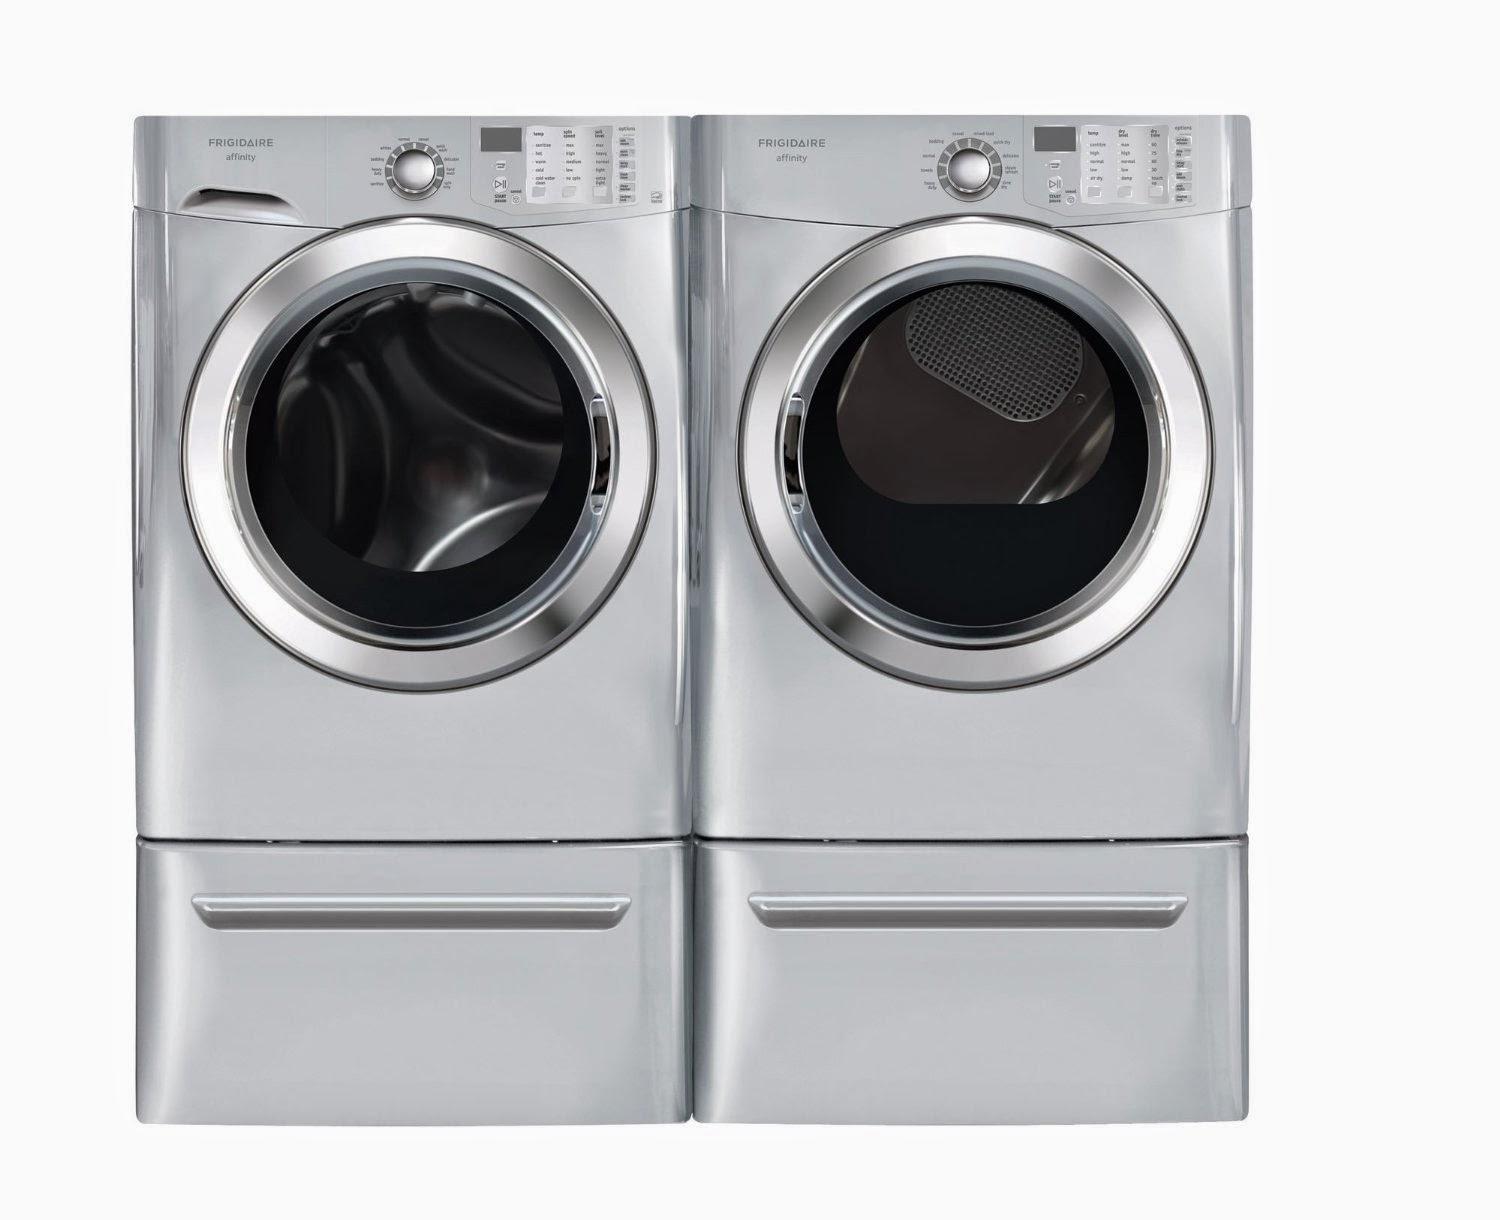 Frigidaire Affinity Silver 3 8 Cf Front Load Steam Washer 7 0 Gas Dryer Laundry Set With Pedestals